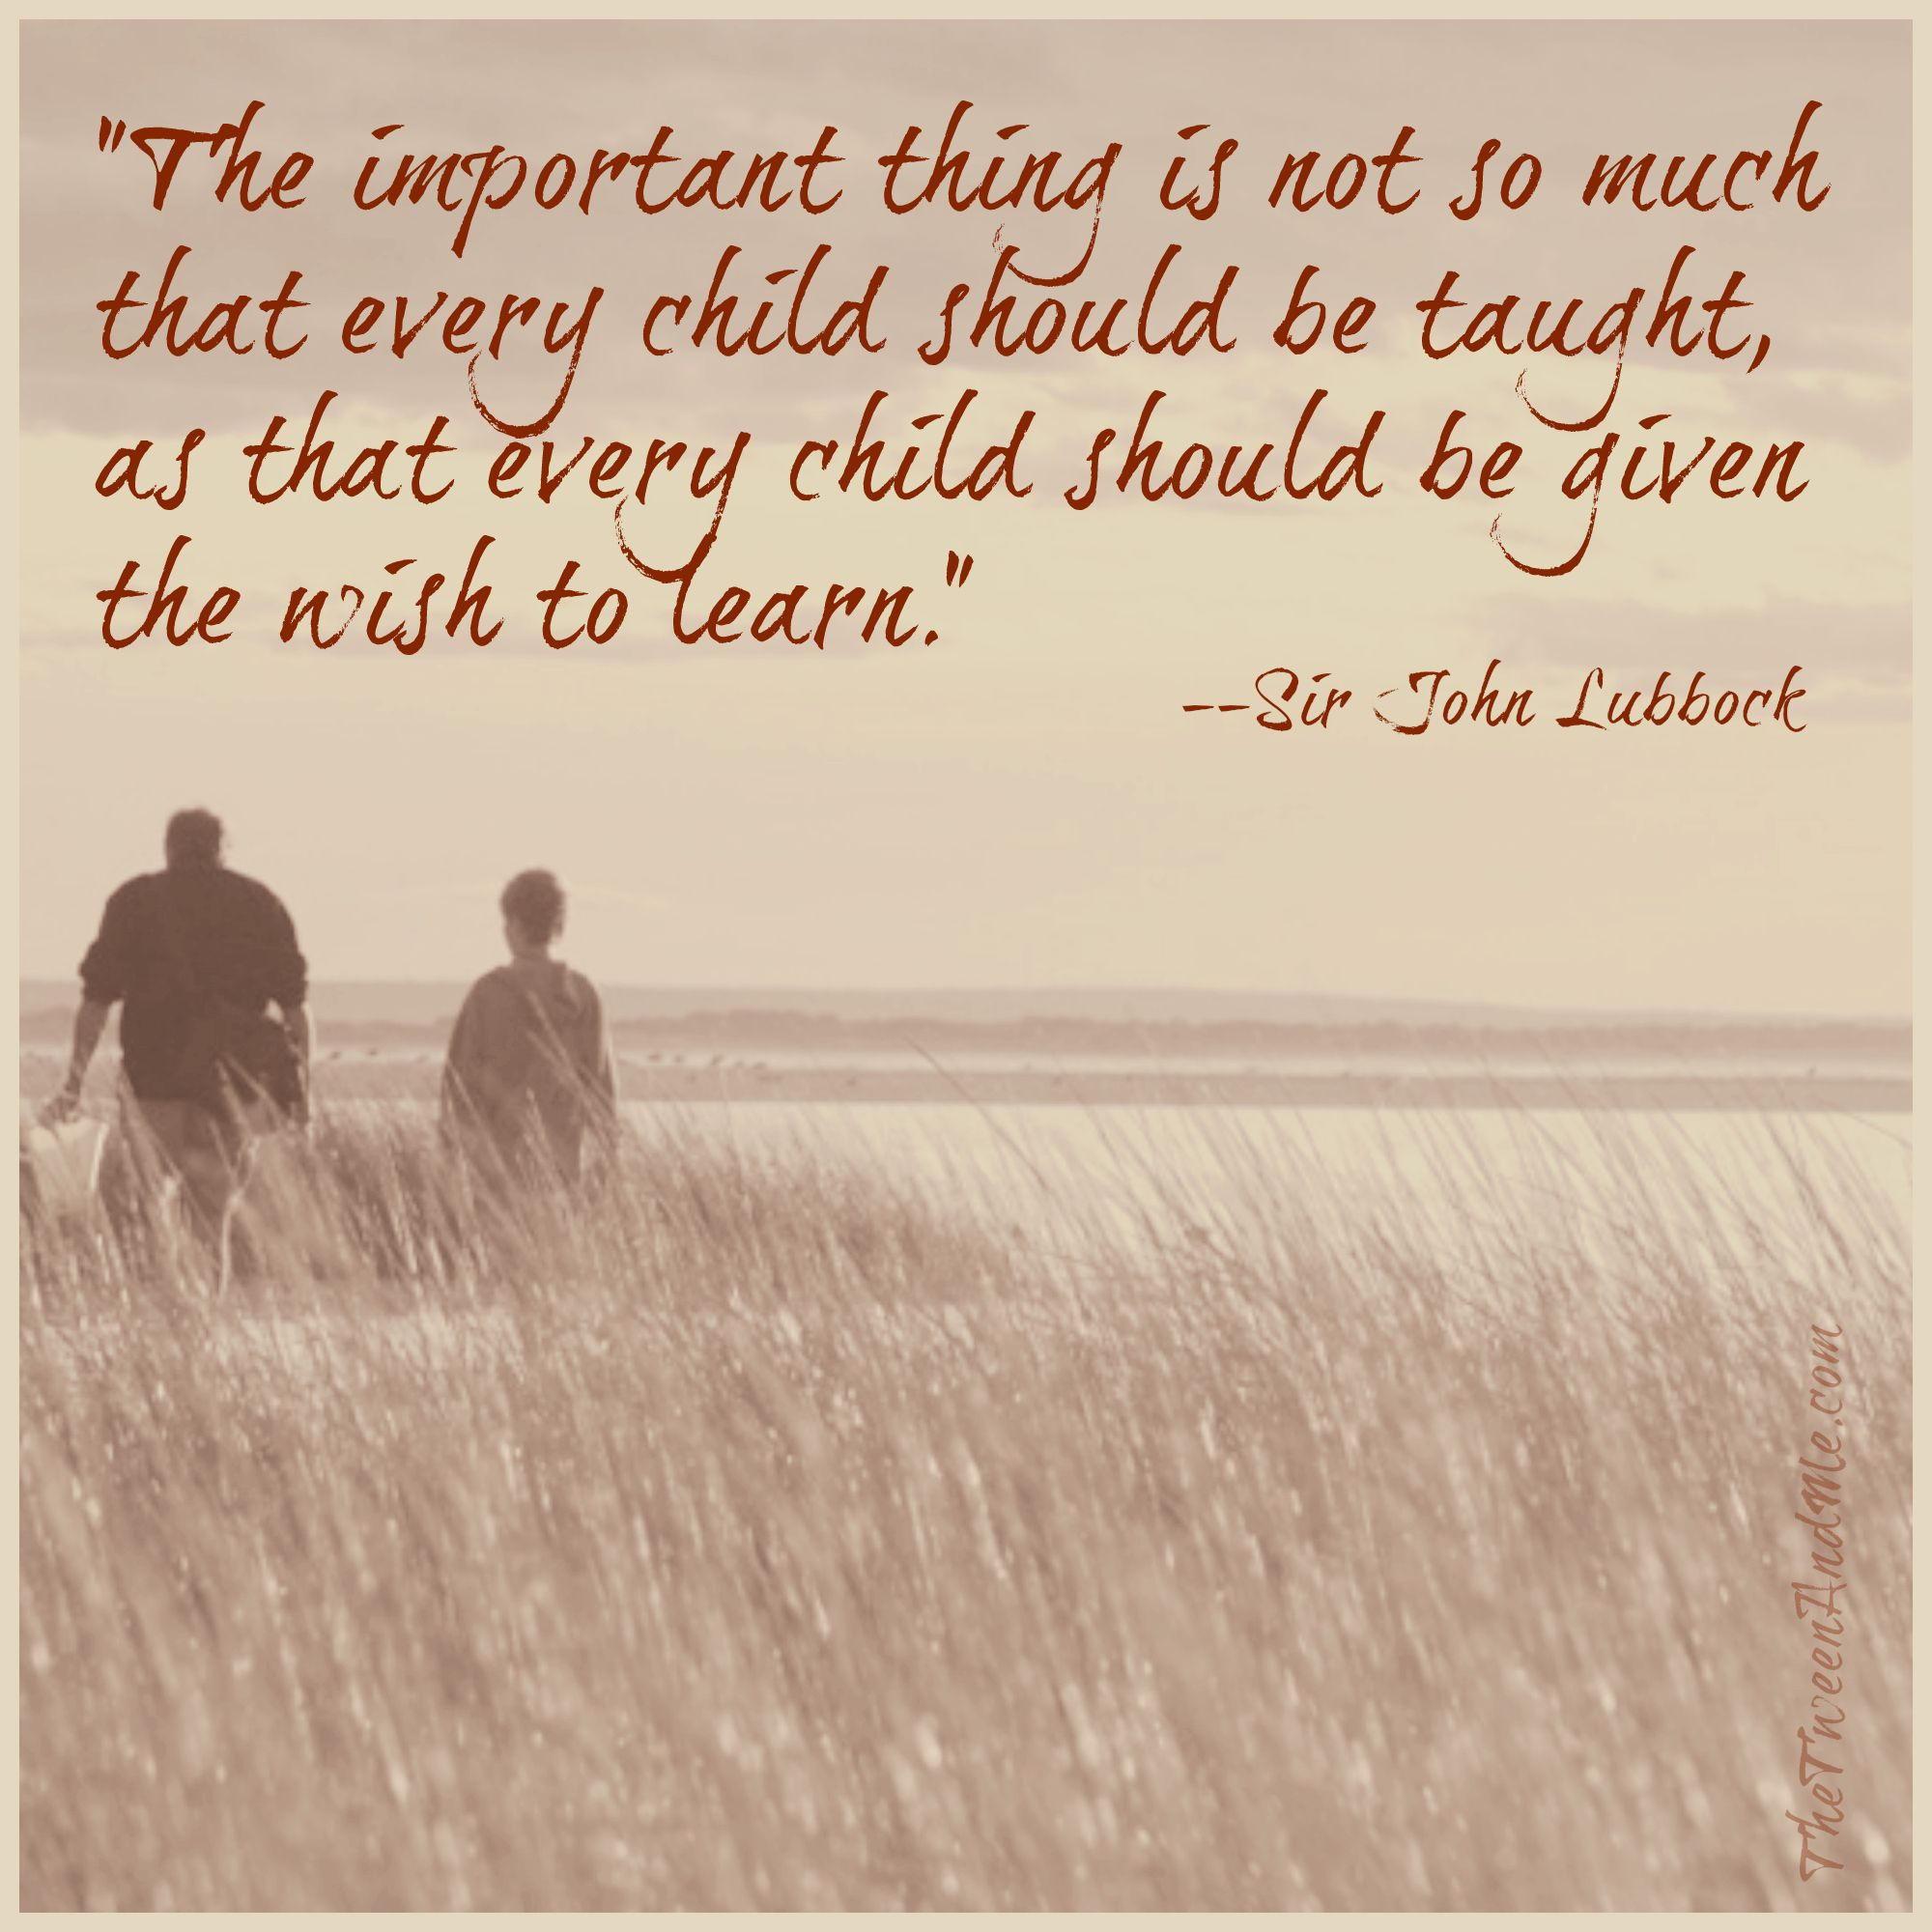 Sir John Lubbock quote about children wanting to learn